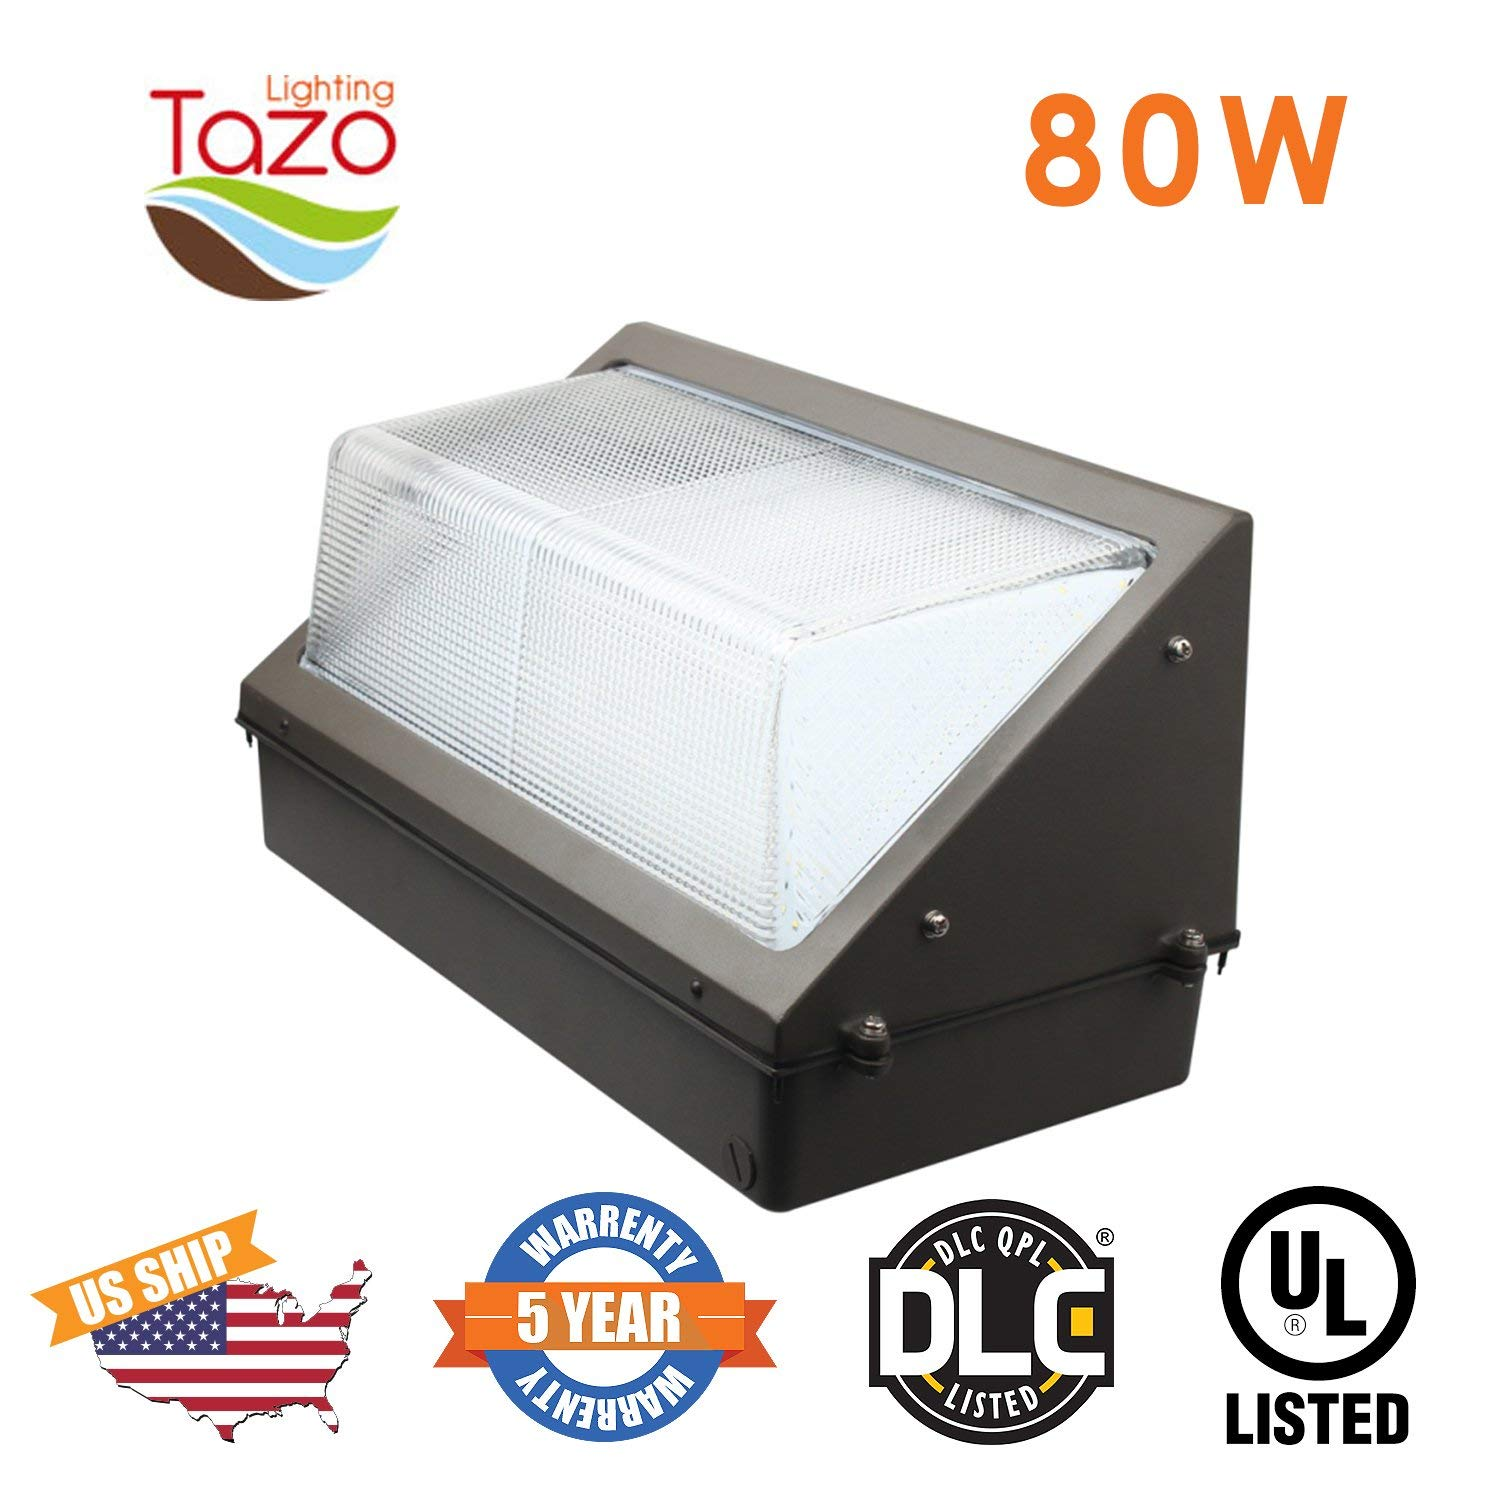 TAZO LIGHTING 80W LED Wall Pack Light, 2700-7000K LED Security Lighting Fixture, 6400-7200 Lumens(200-300W MH/HPS Equivalent), IP65 Outdoor Industrial and Commercial Aare Lighting (UL-Listed)